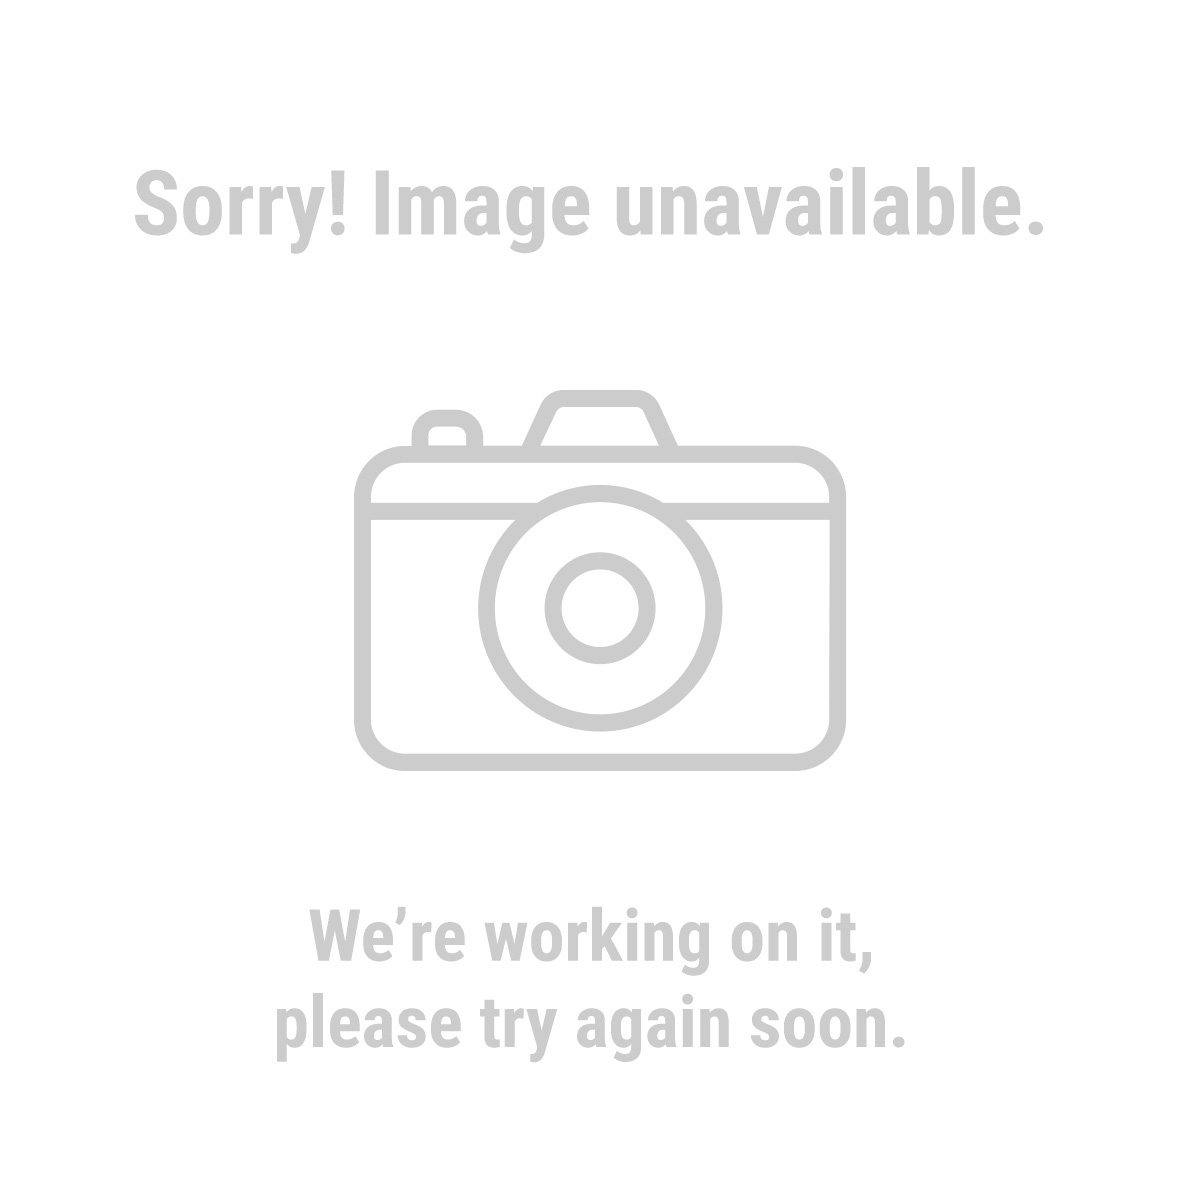 "Chicago Electric Welding Systems 69528 0.035"" ER70S-6 Carbon Steel Welding Wire, 2 Lb. Roll"